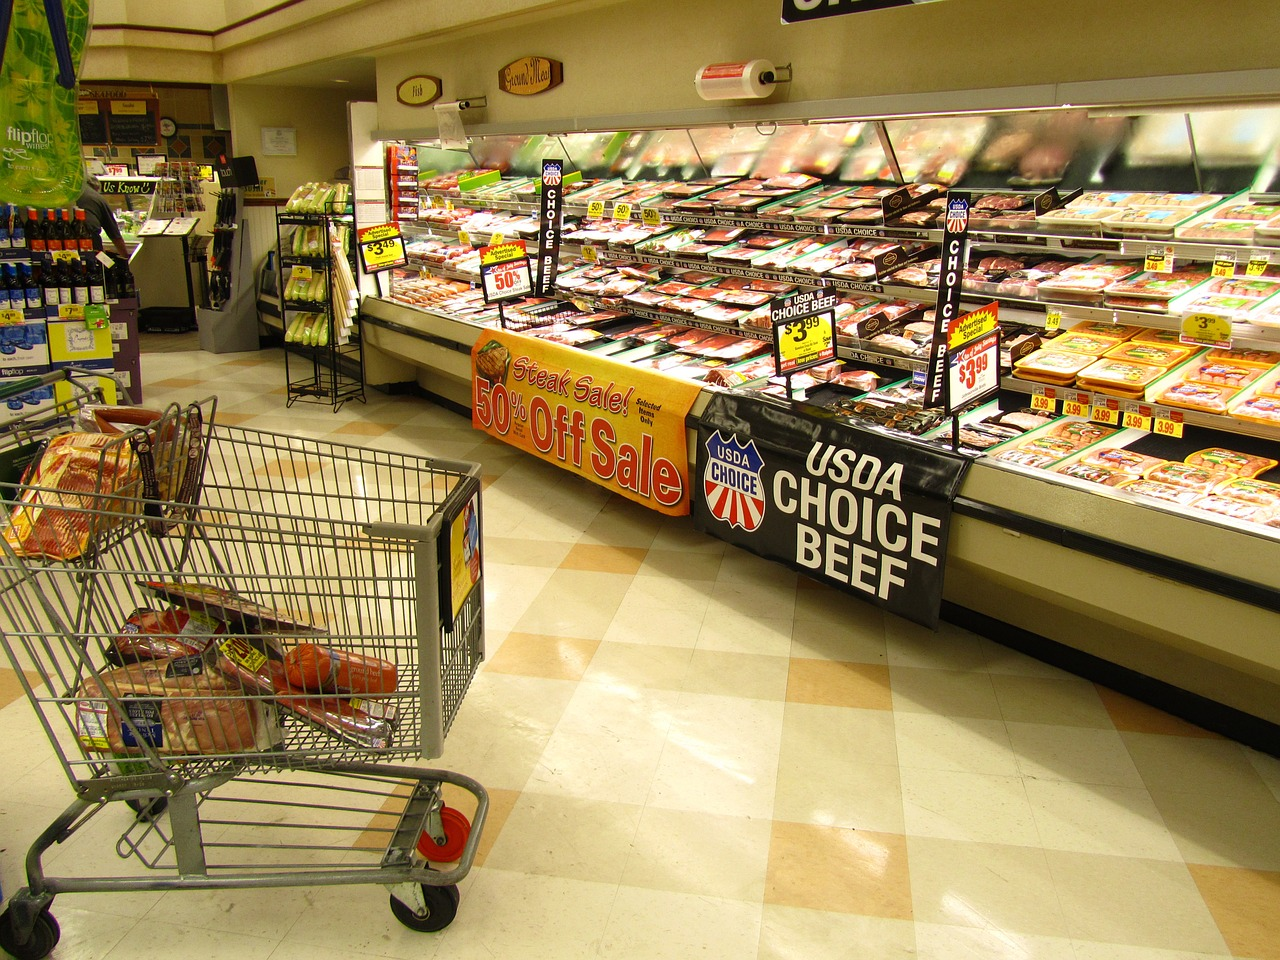 In-store trade promotions at grocery